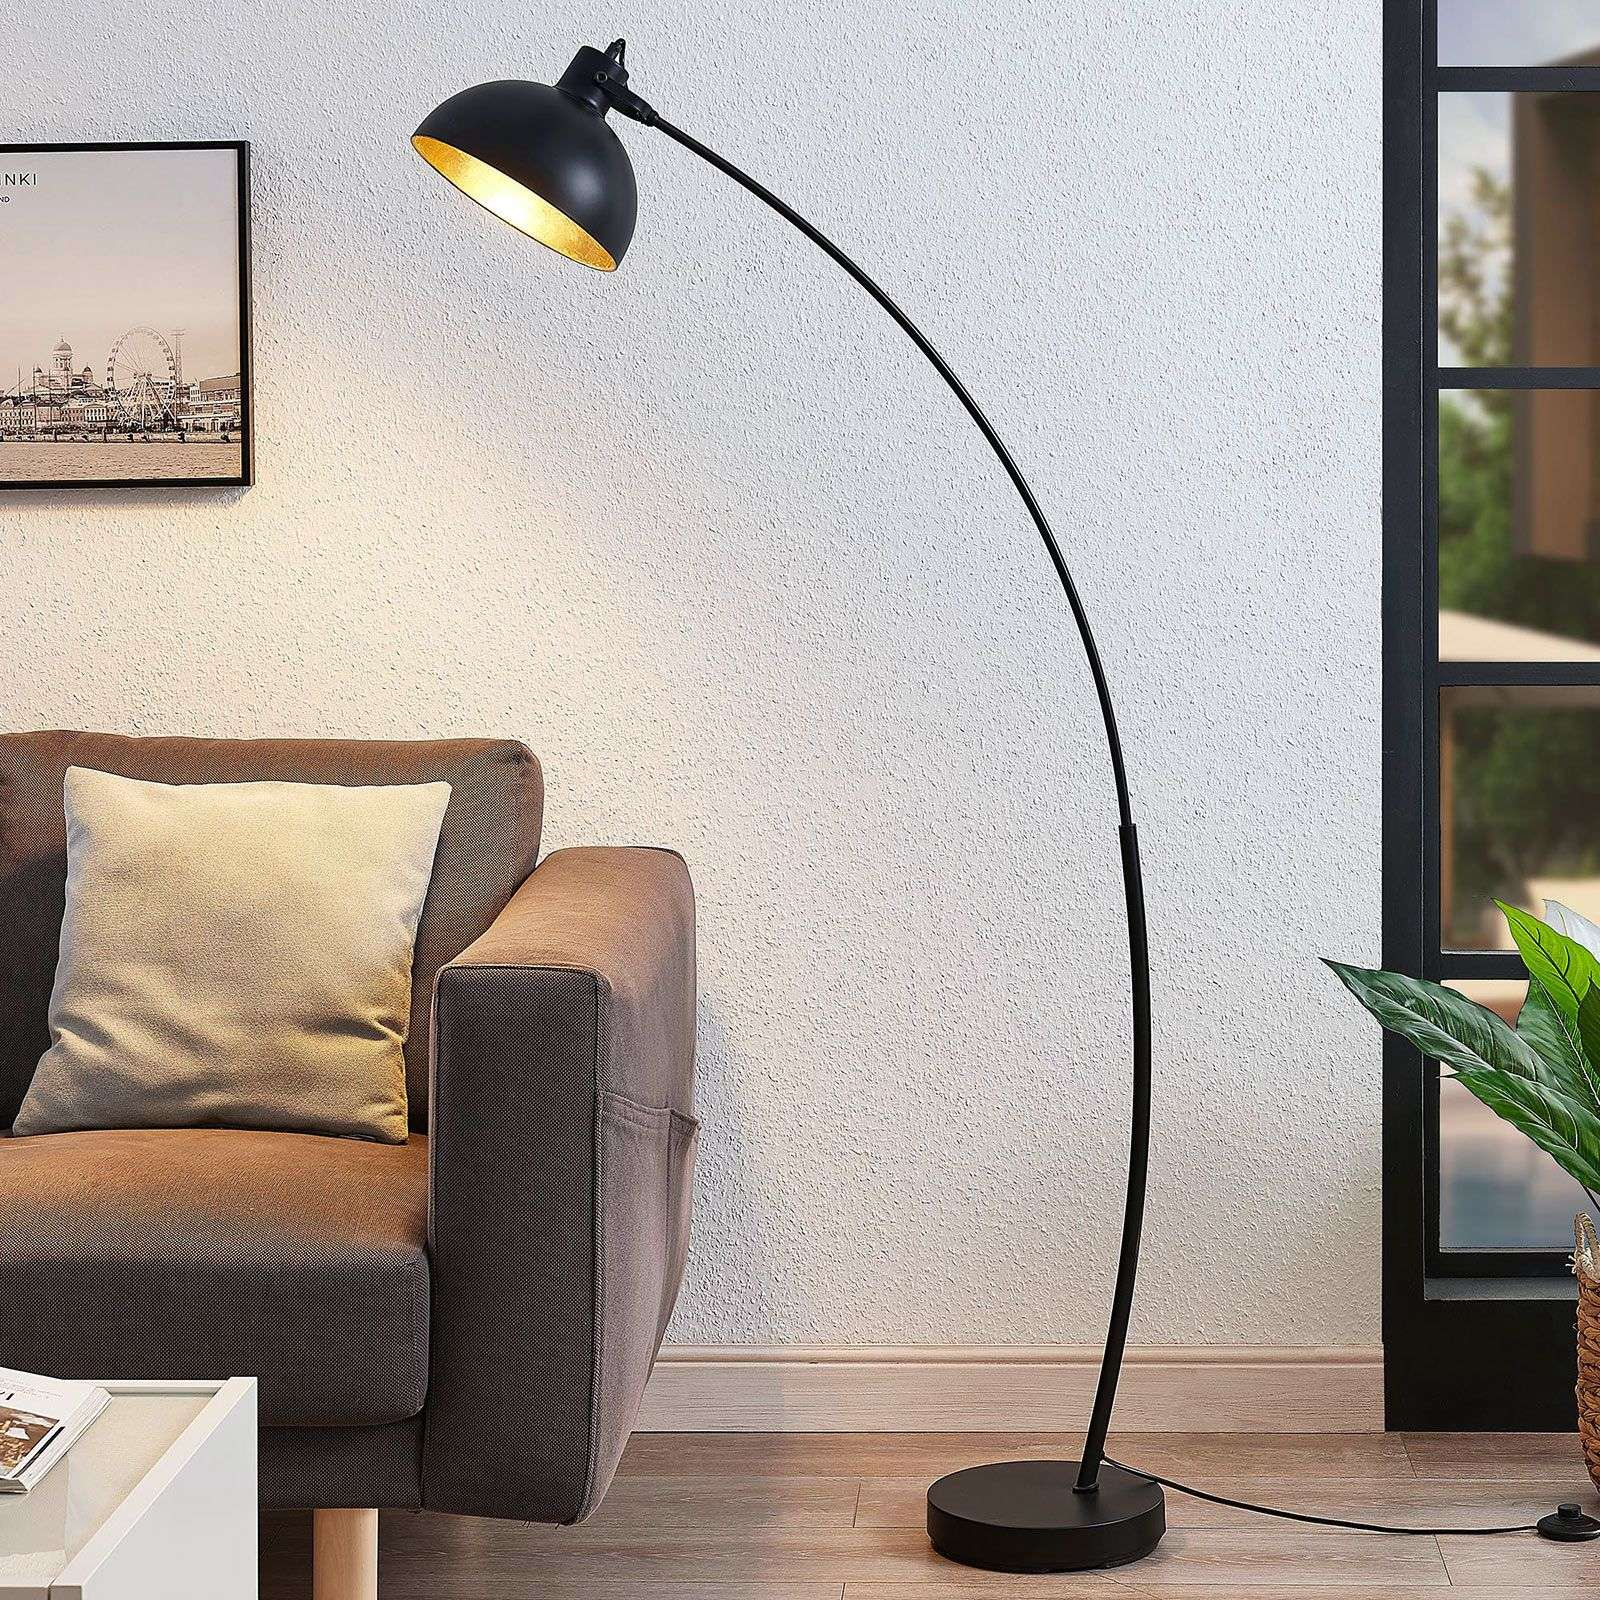 Boogvloerlamp Phileas in zwart en goud